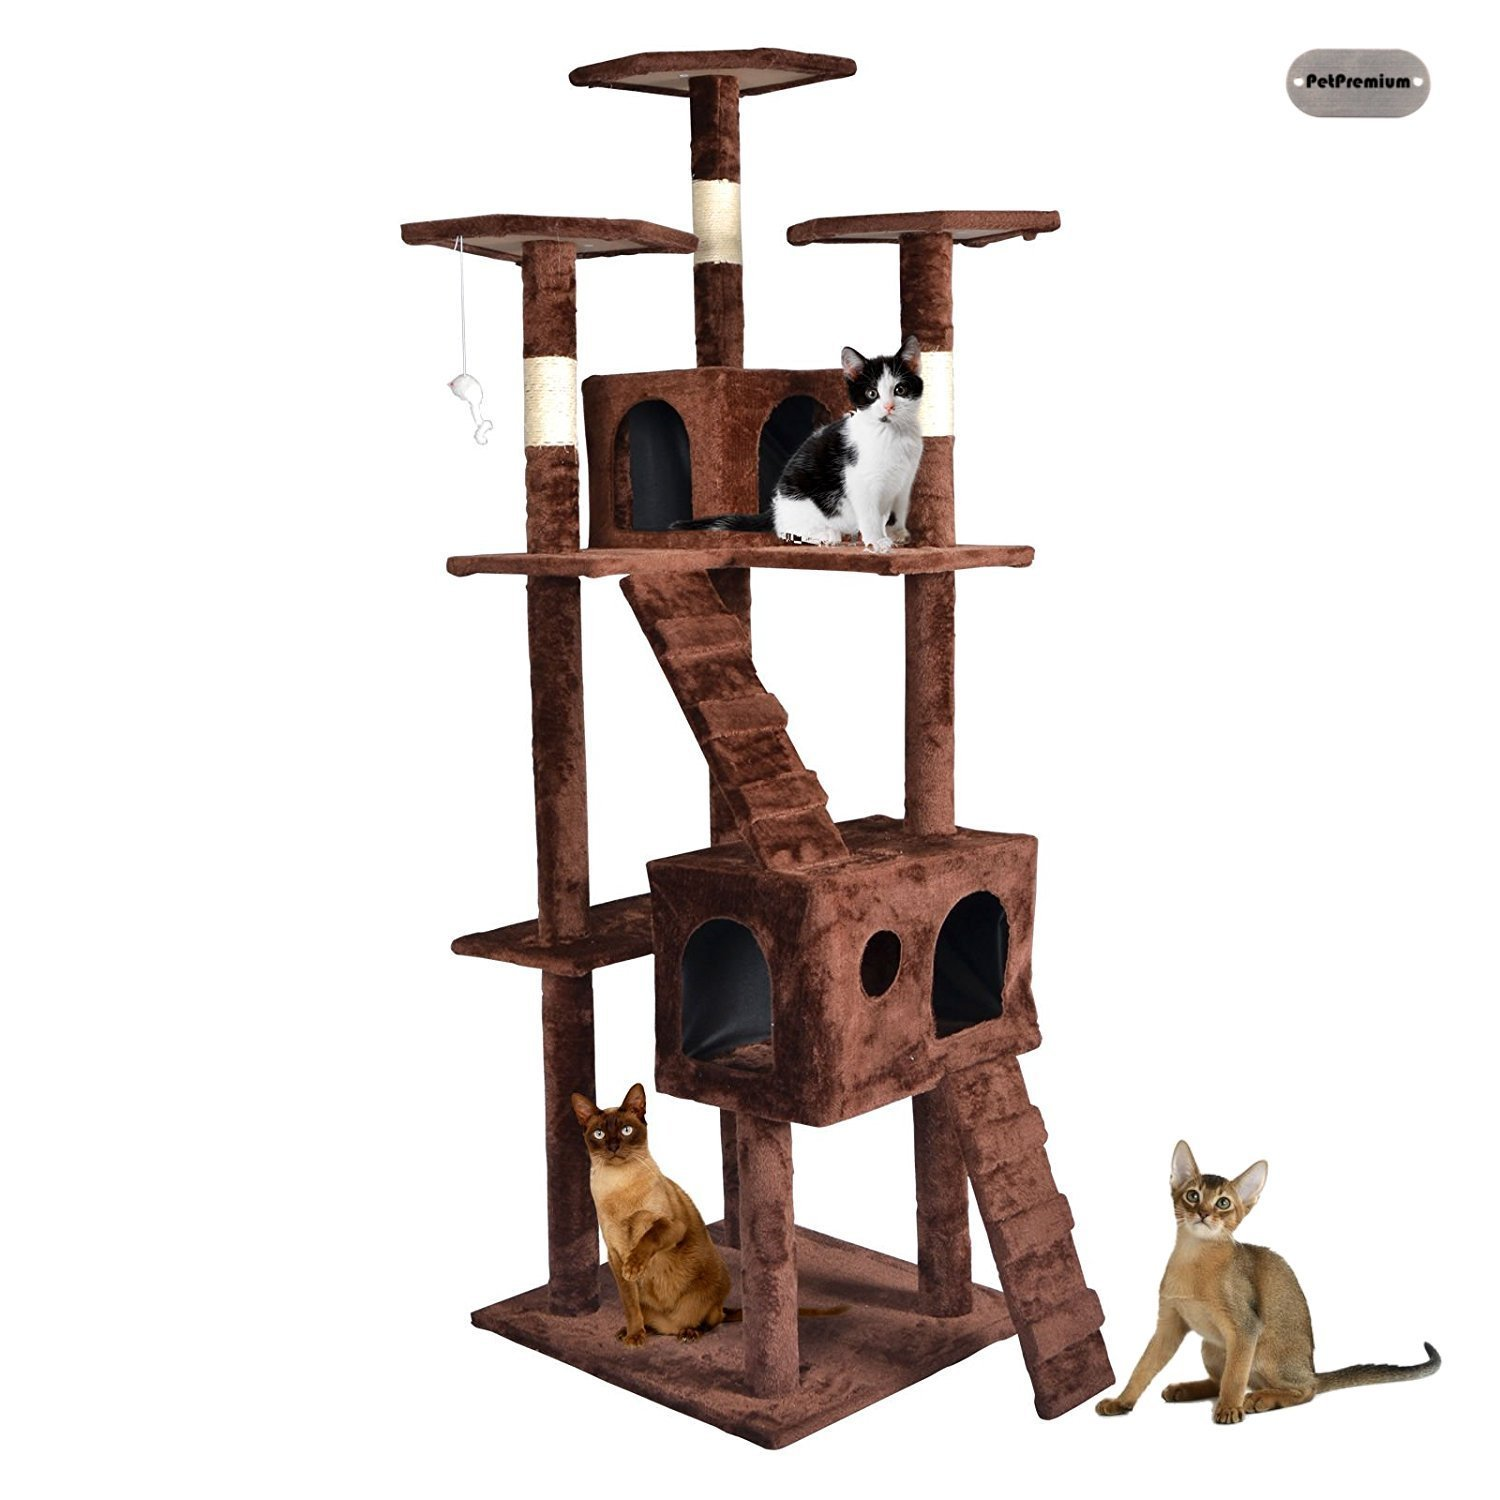 PetPremium Cat Kitten Tree Tower Condo | Indoor Bed Perch Modern Sturdy | Scratcher Scratching Post Furniture Play Pet Home House | 73'' Height, Brown